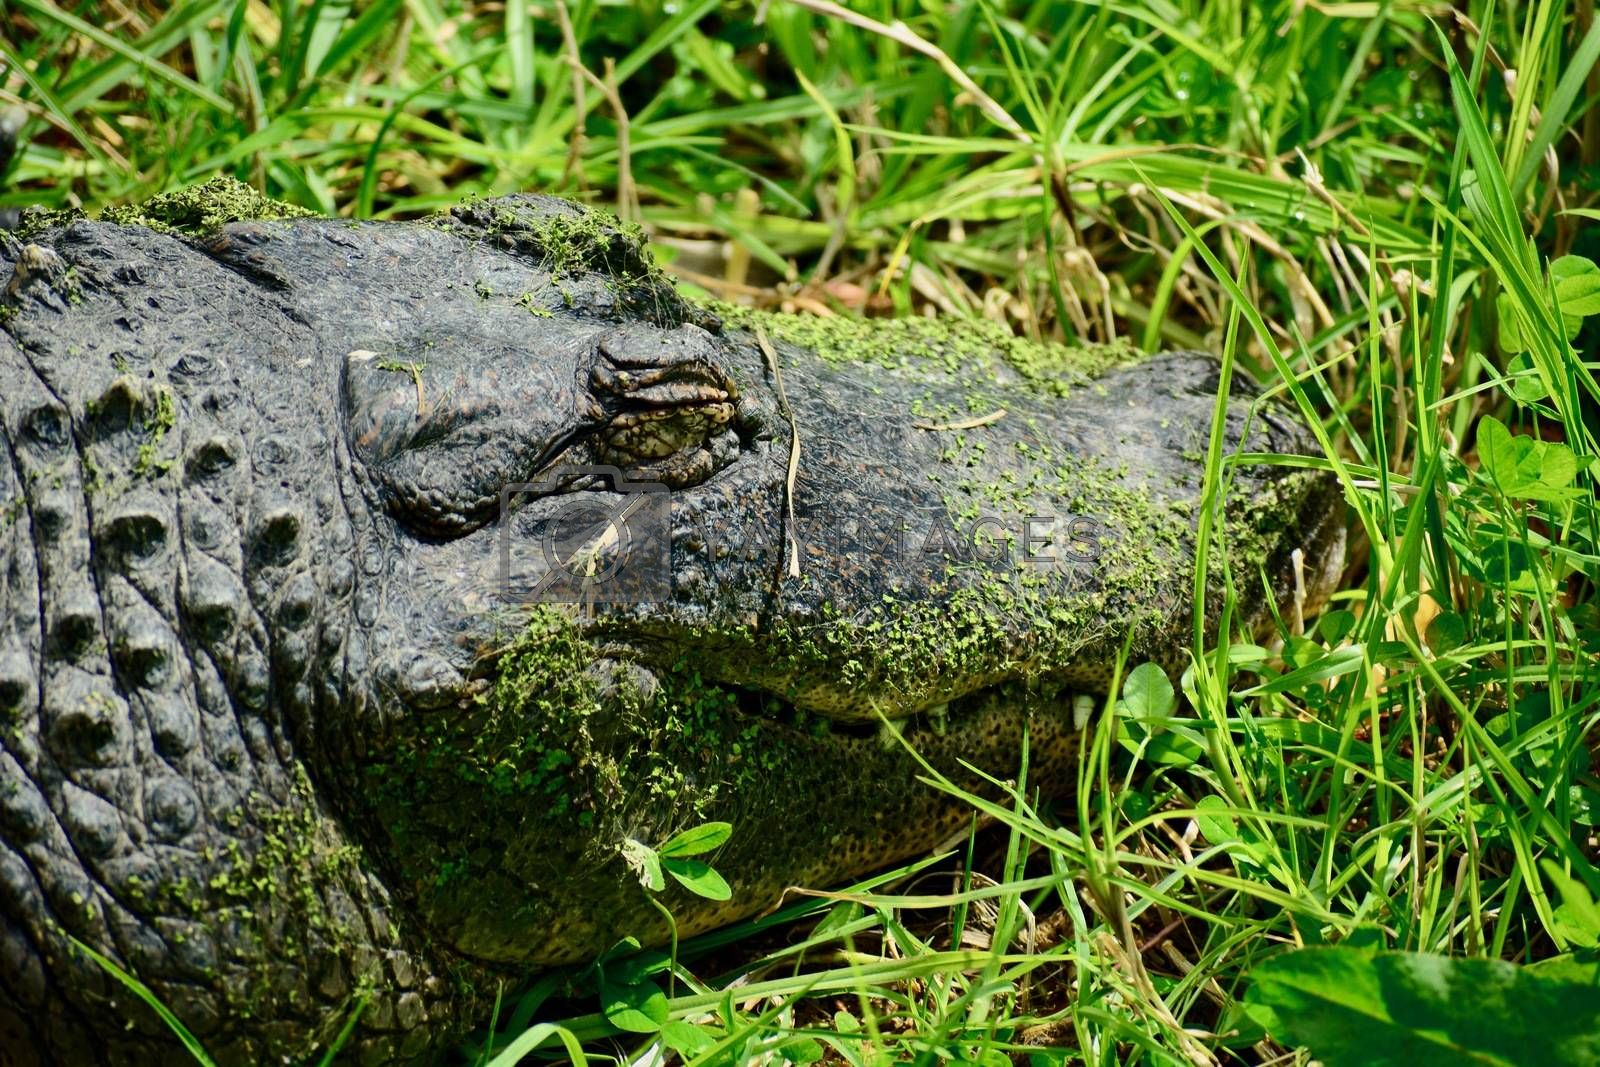 American alligators are apex predators and consume fish, amphibians, reptiles, birds, and mammals.